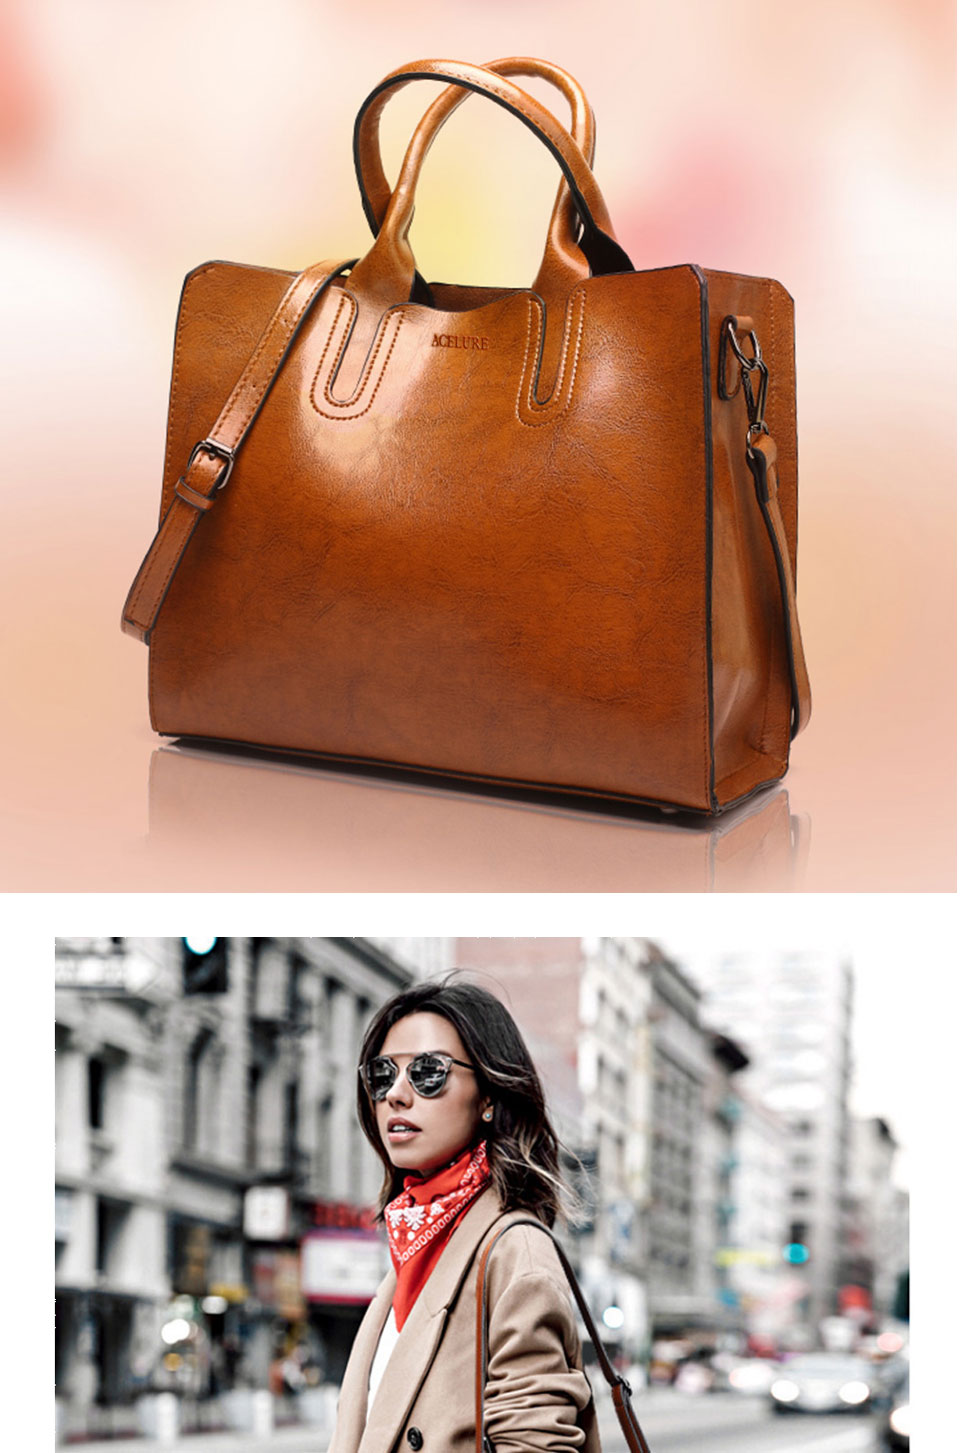 ACELURE Leather Handbags Big Women Bag High Quality Casual Female Bags Trunk Tote Spanish Brand Shoulder Bag Ladies Large Bolsos 7